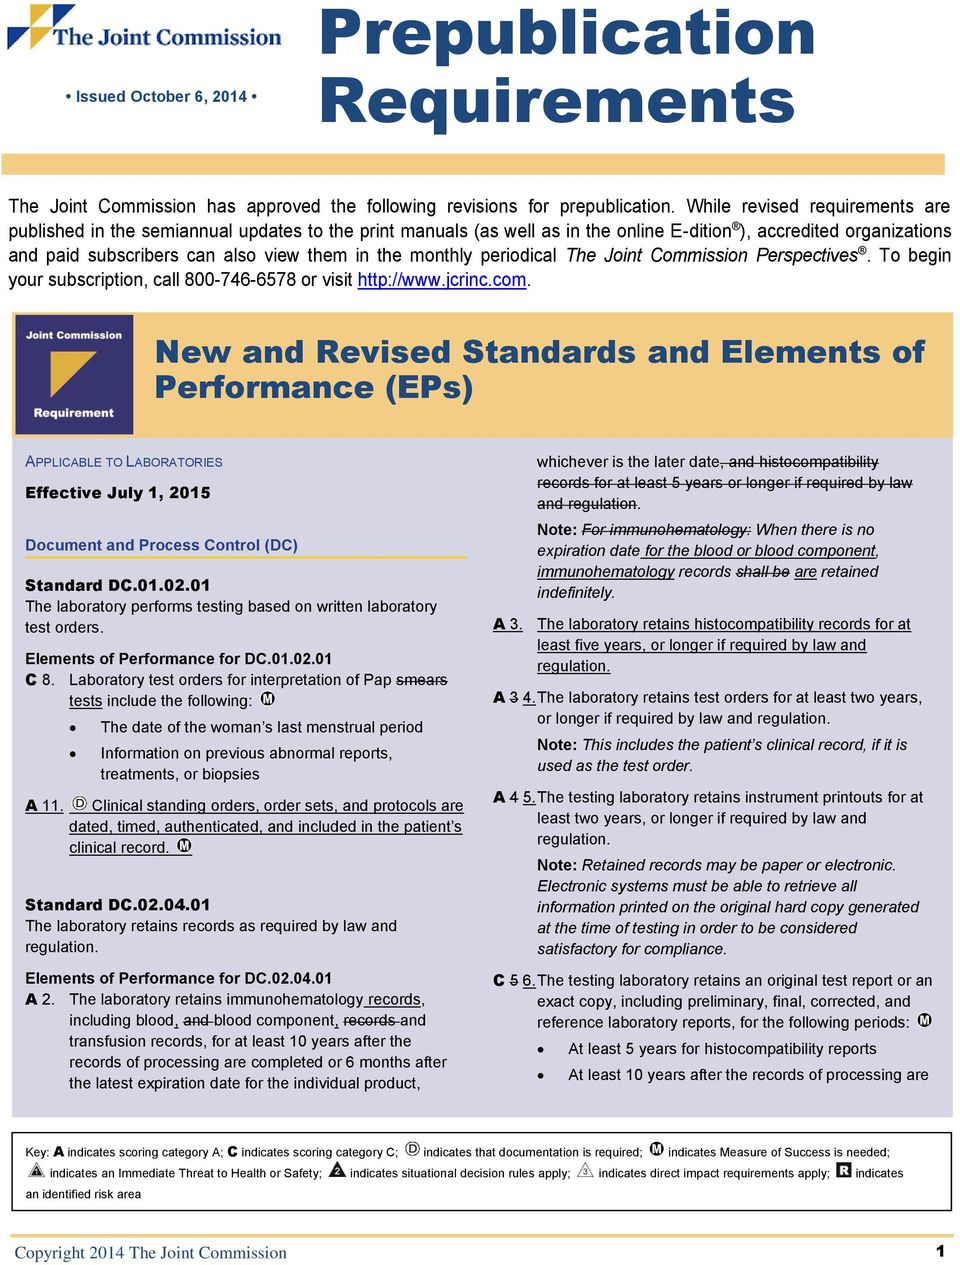 monthly periodical The Joint Commission Perspectives. To begin your subscription, call 800-746-6578 or visit http://www.jcrinc.com.